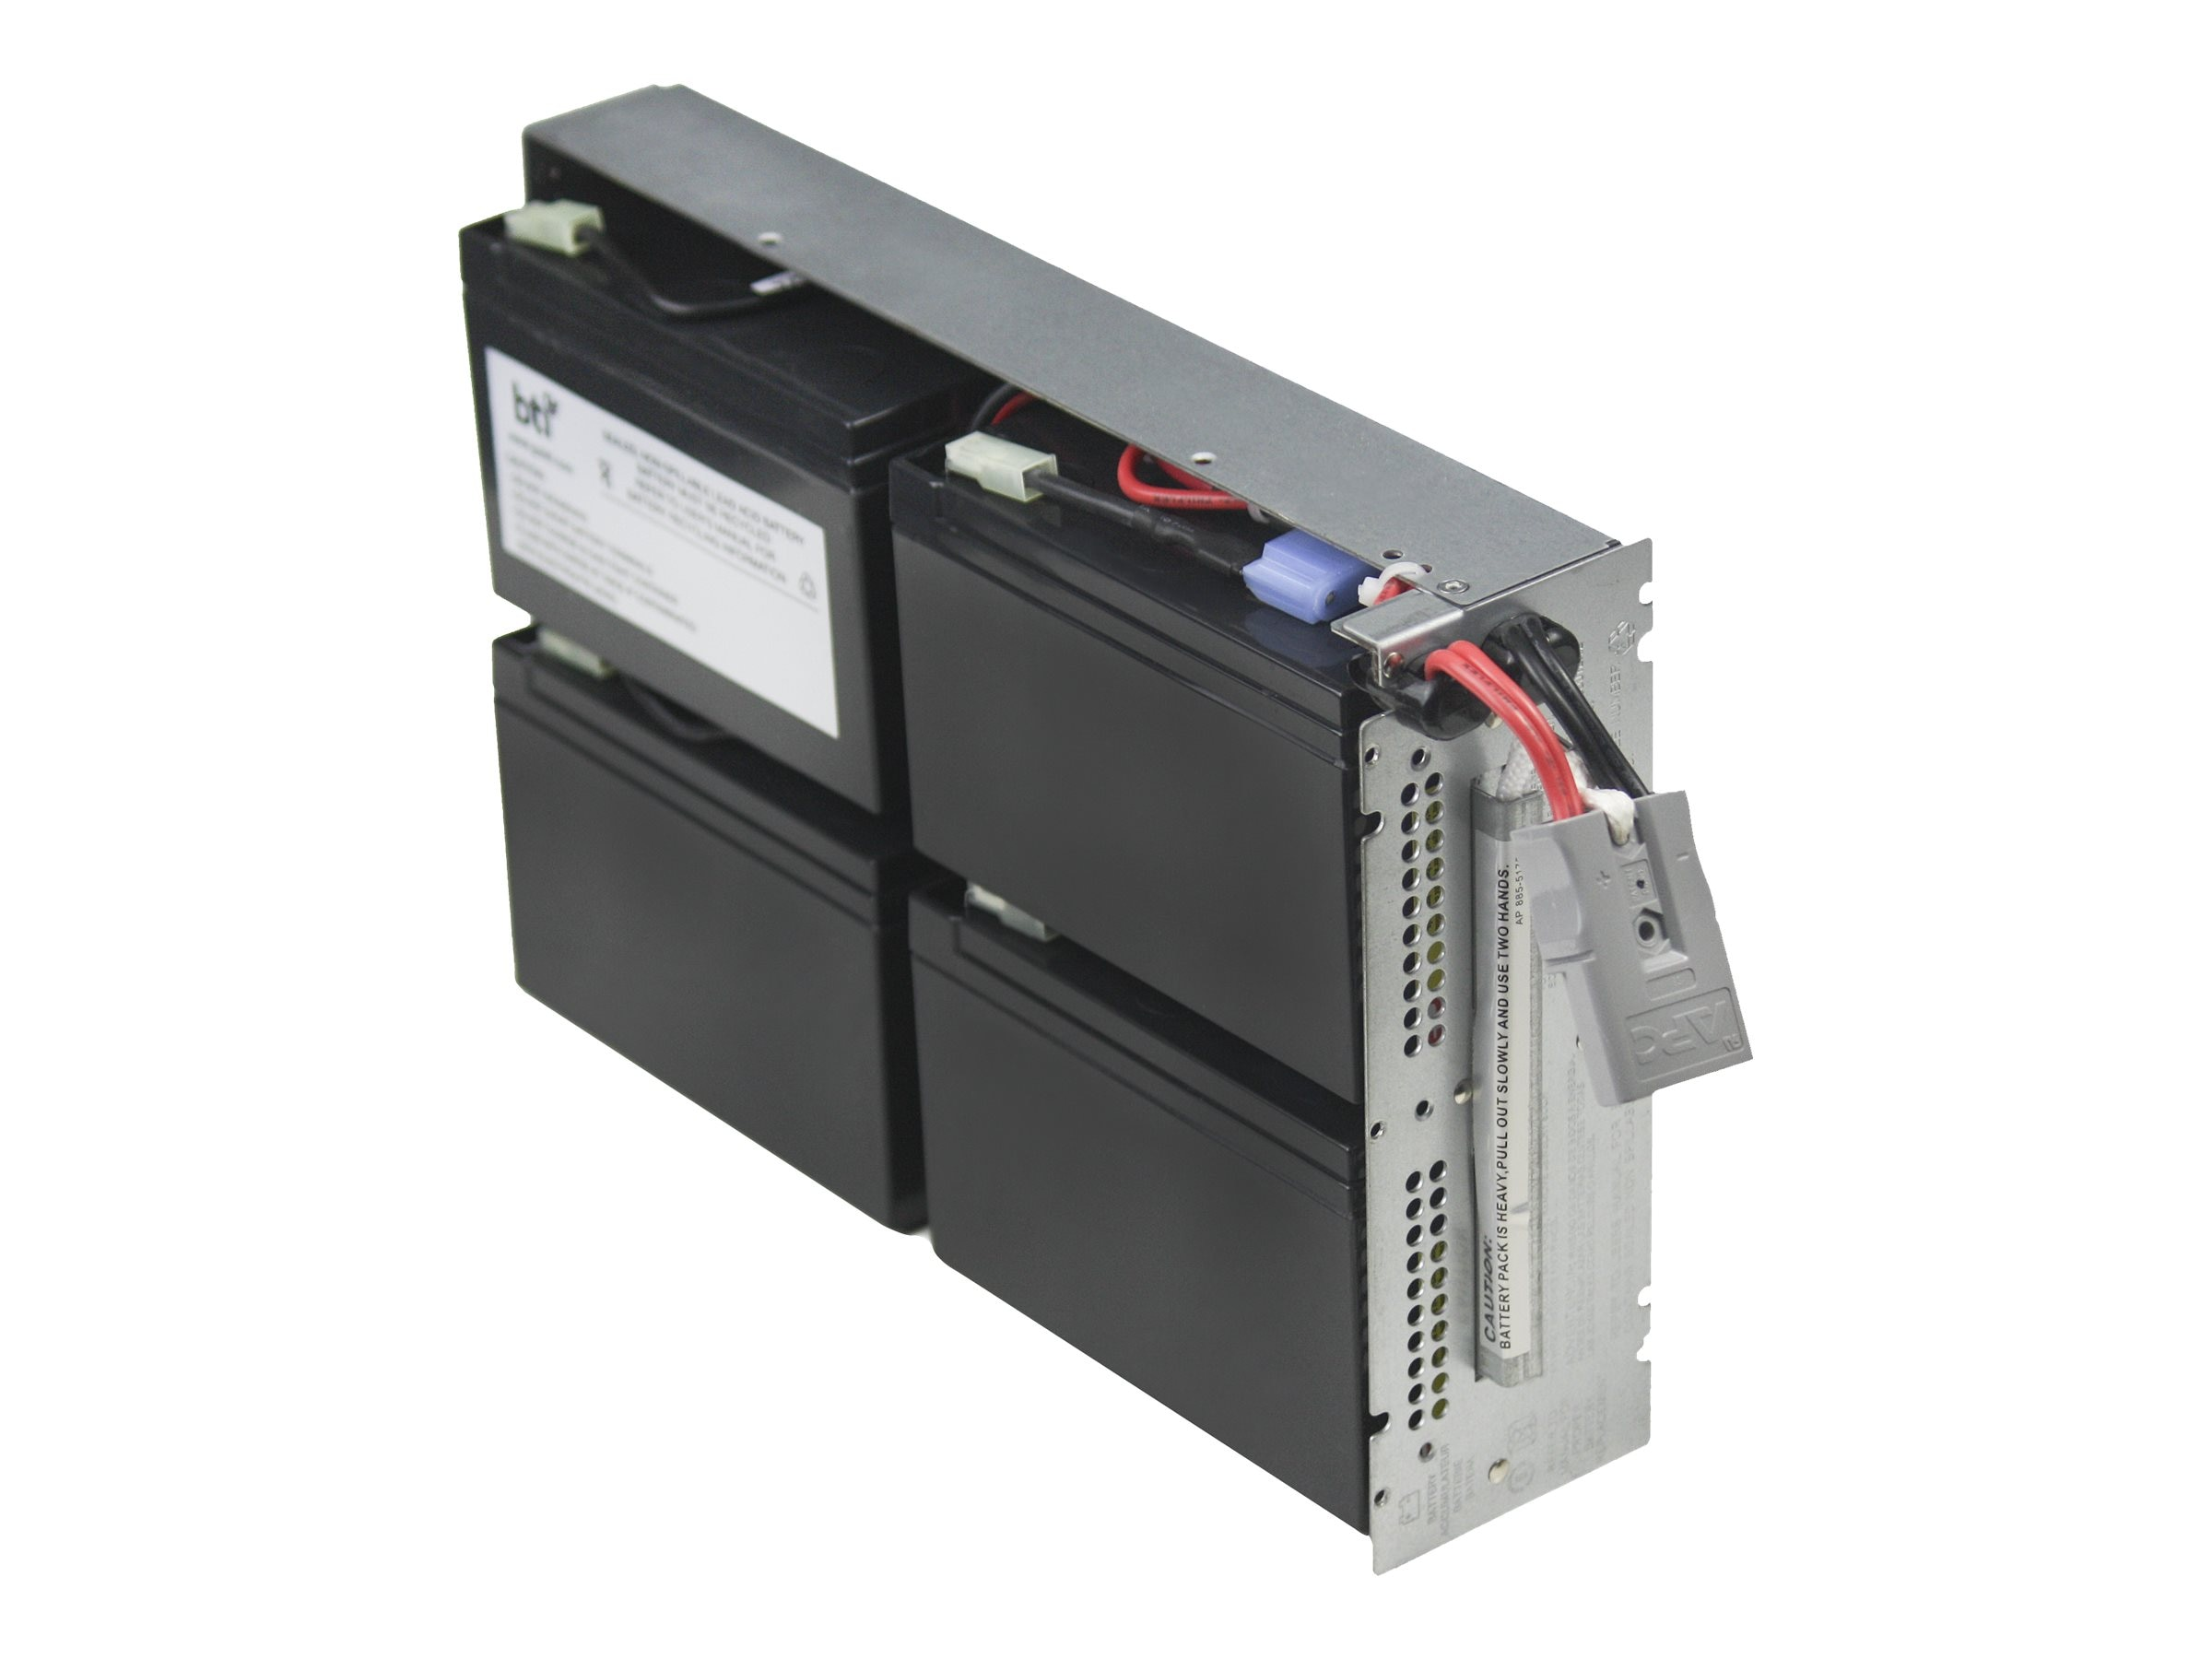 BTI Replacement UPS Battery for APC SMT1000RM2U RBC132 APCRBC132